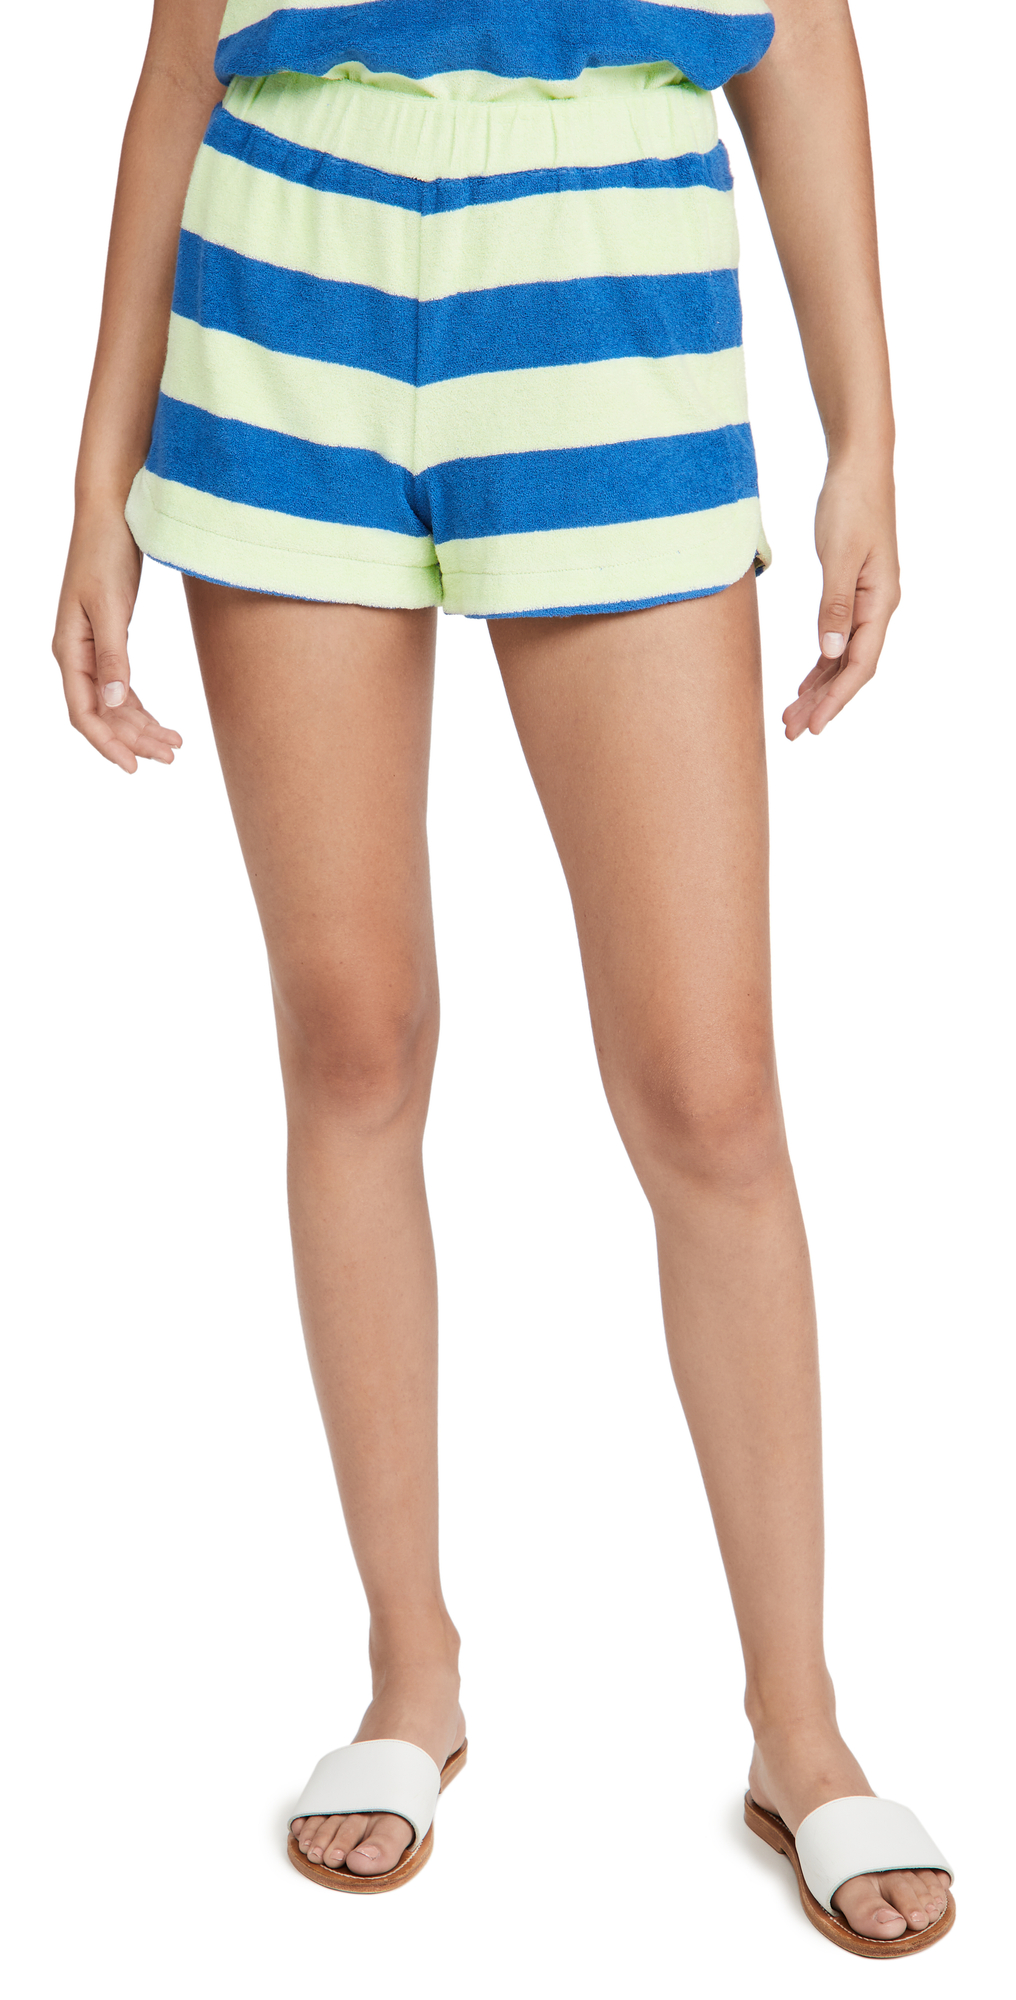 MWL Retroterry Dolphin Shorts